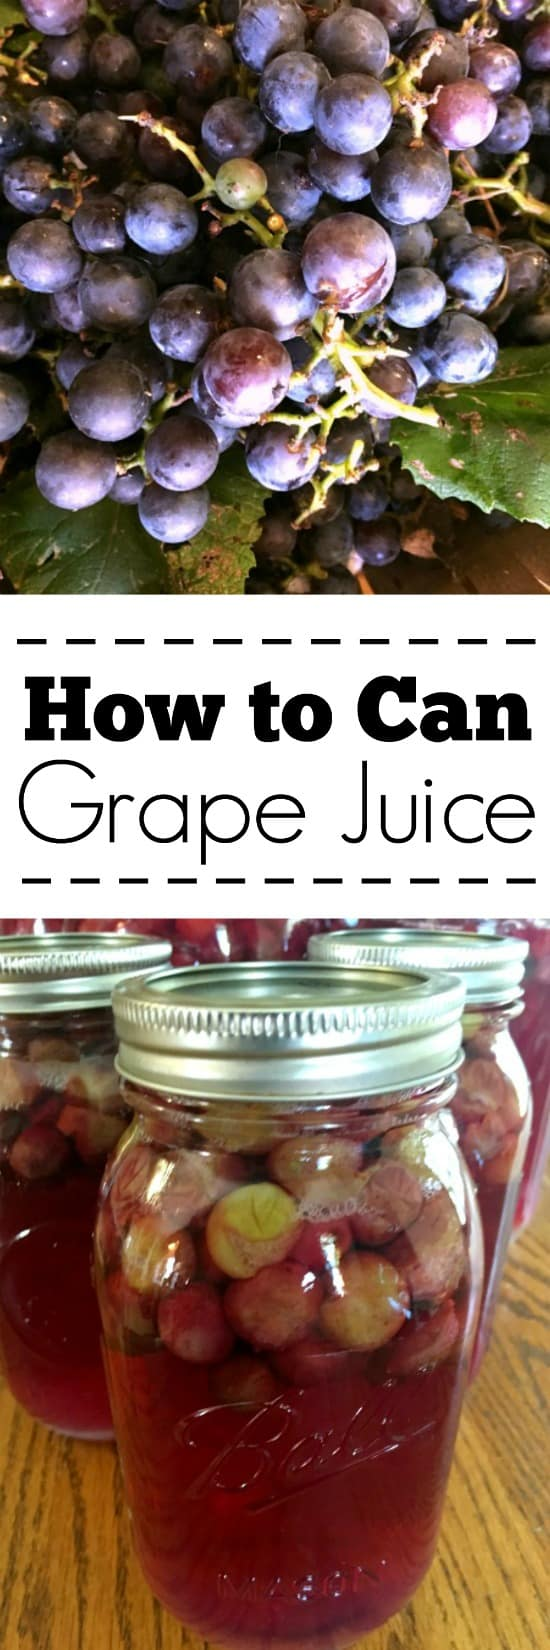 Grapes and Grape juice in canning jars